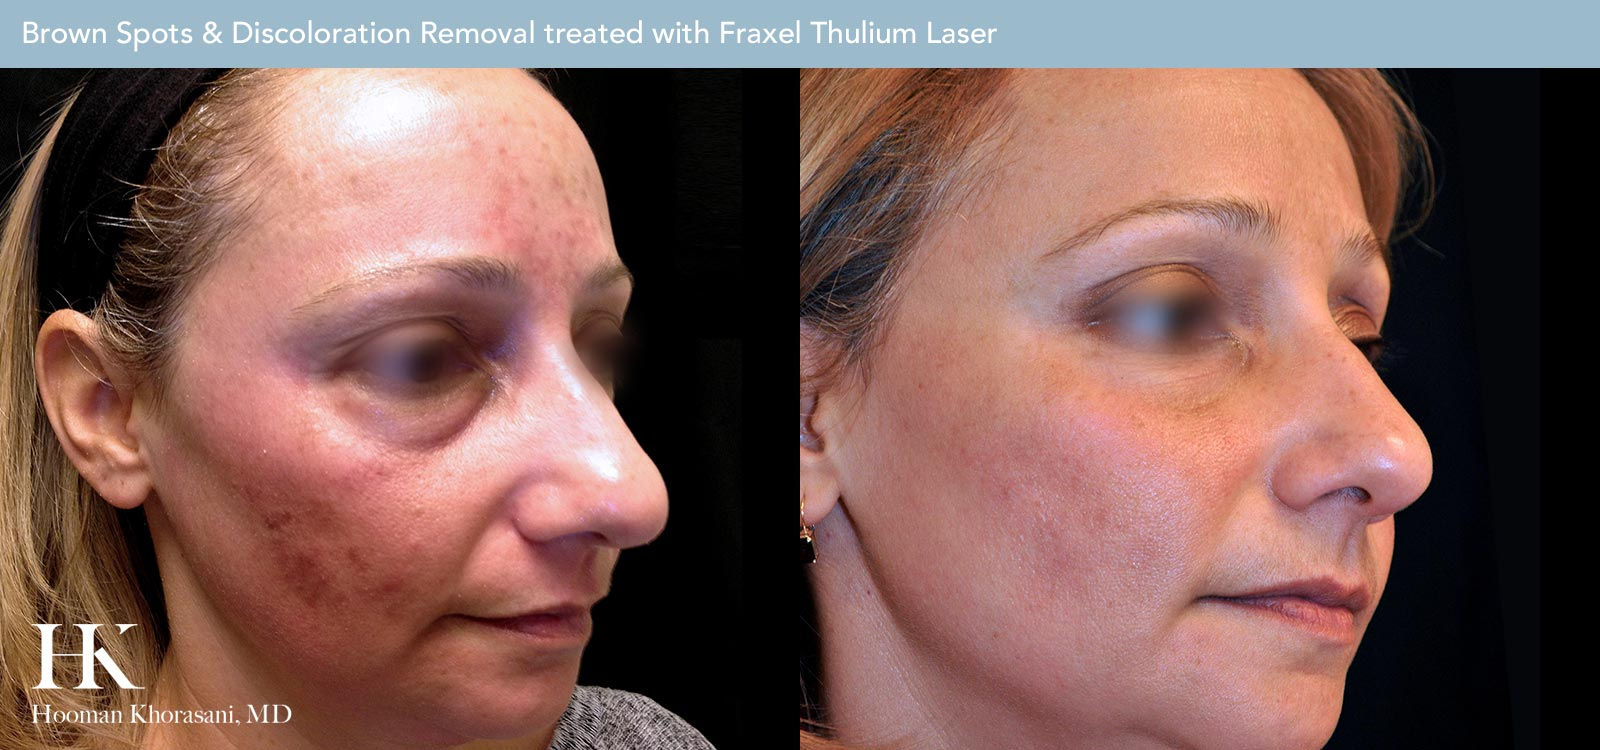 Brown Spot & Discoloration Removal Before and After Case